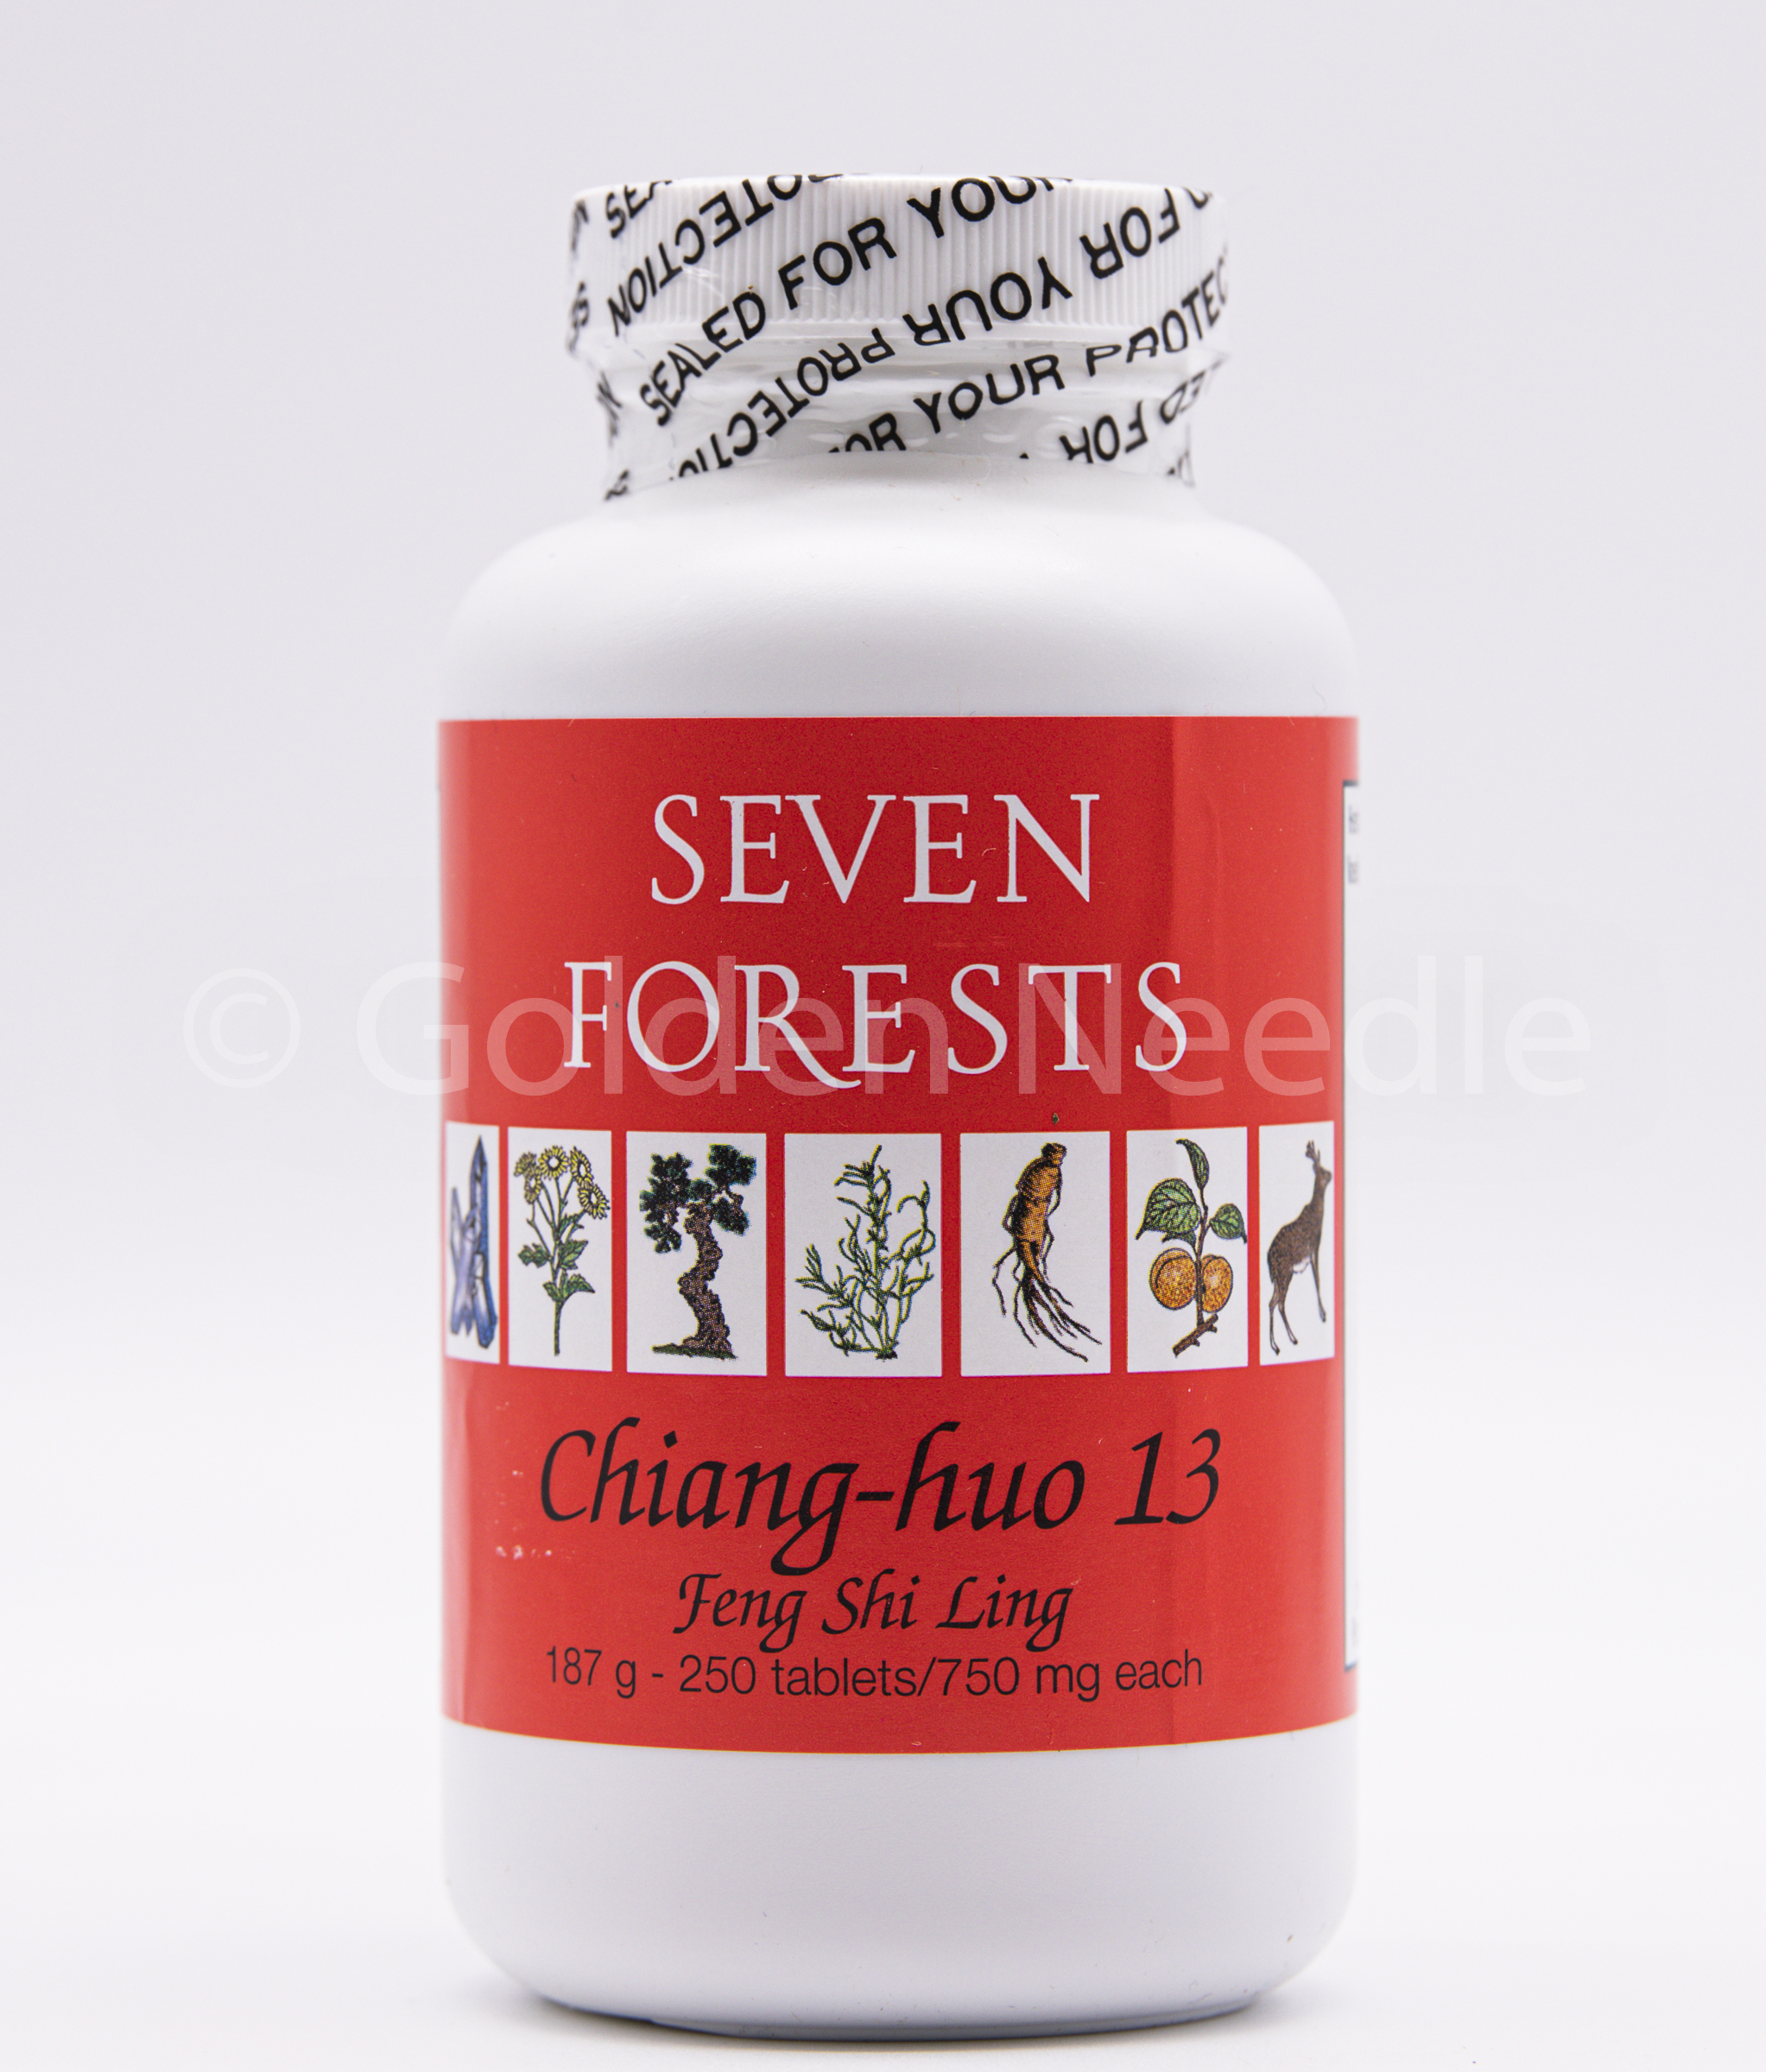 Chiang-huo 13, 250 tablets